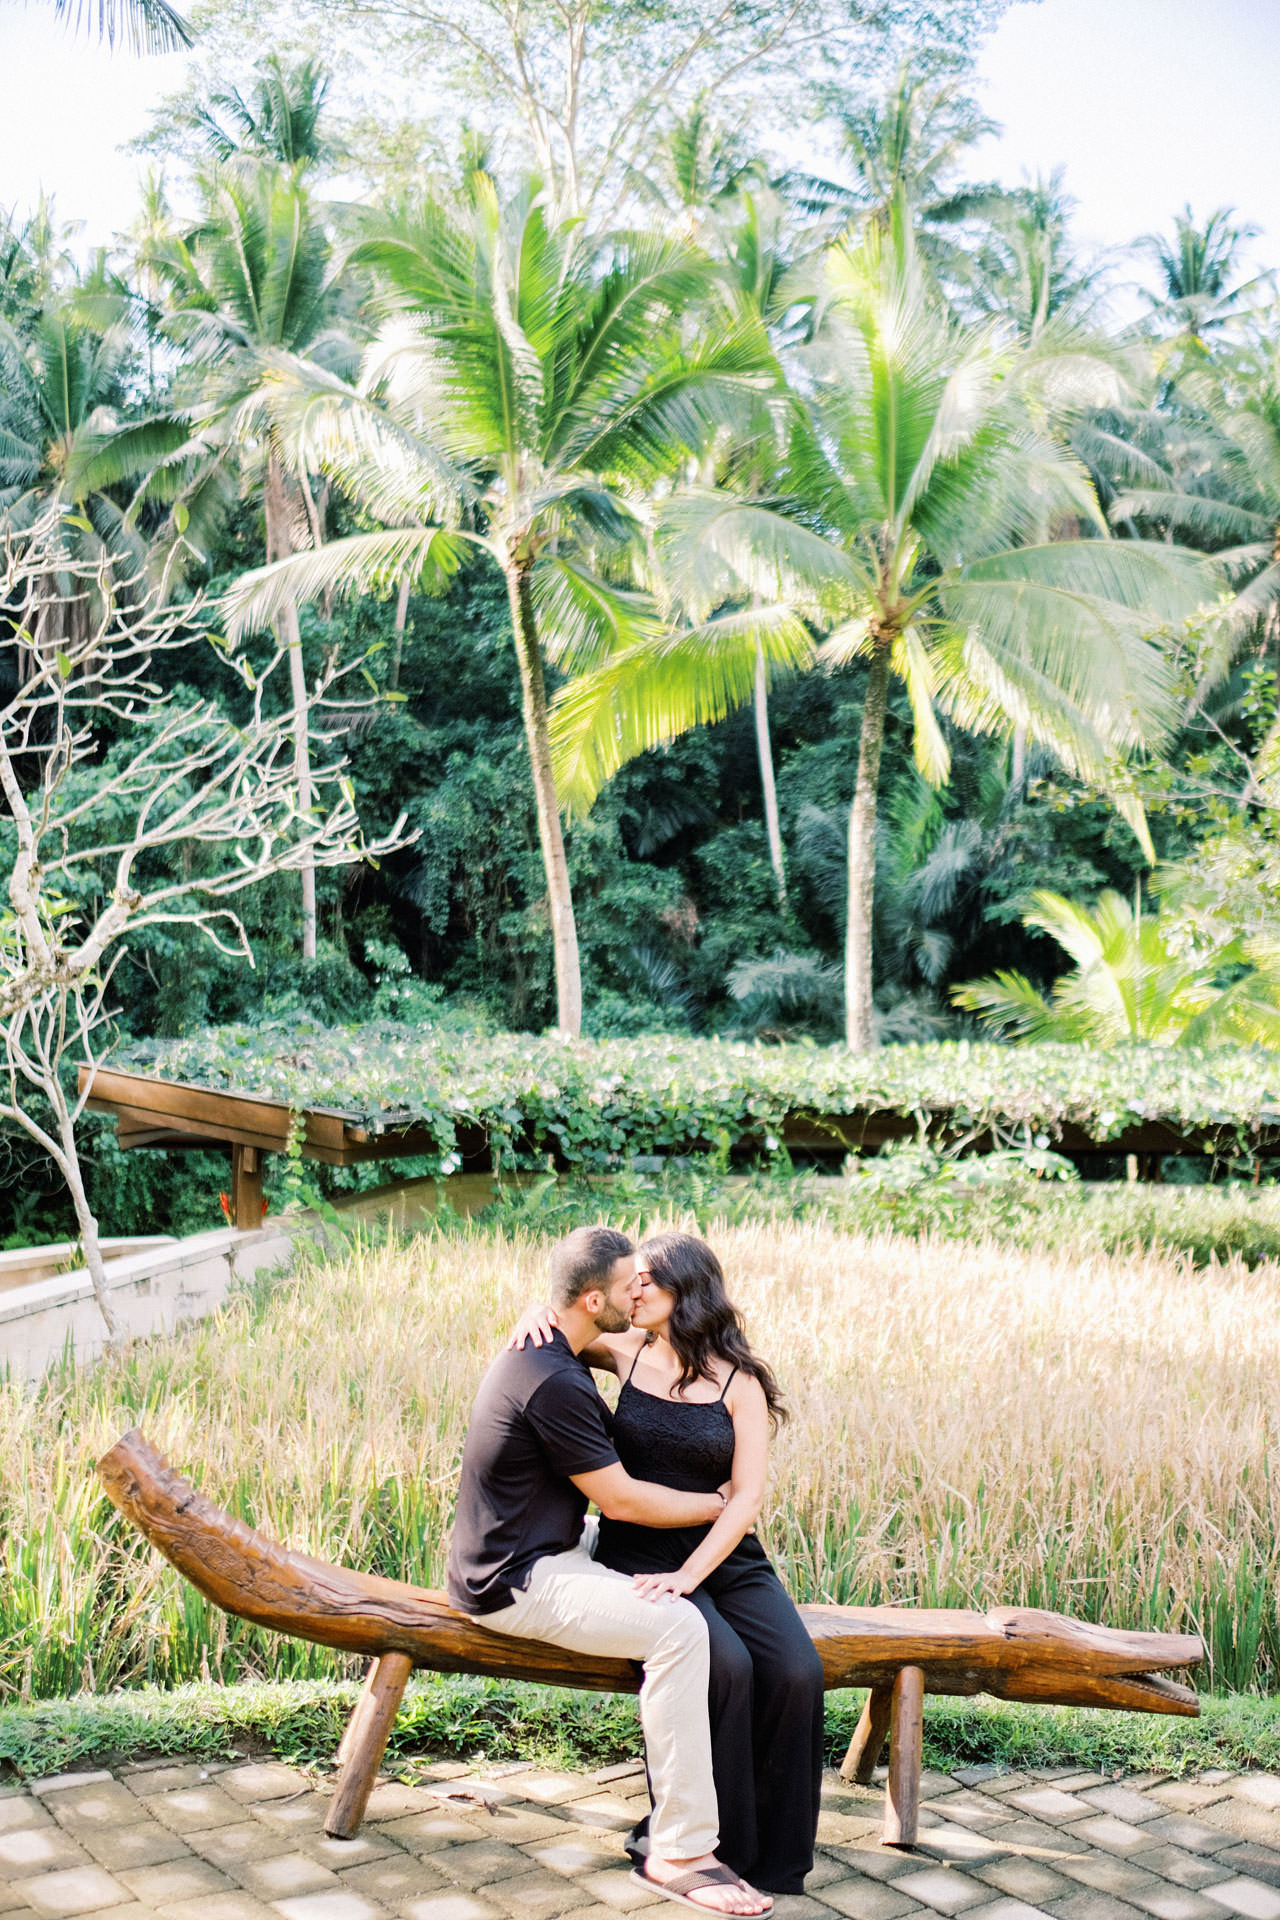 Honeymoon Photo Session at The World's Best Resort 11